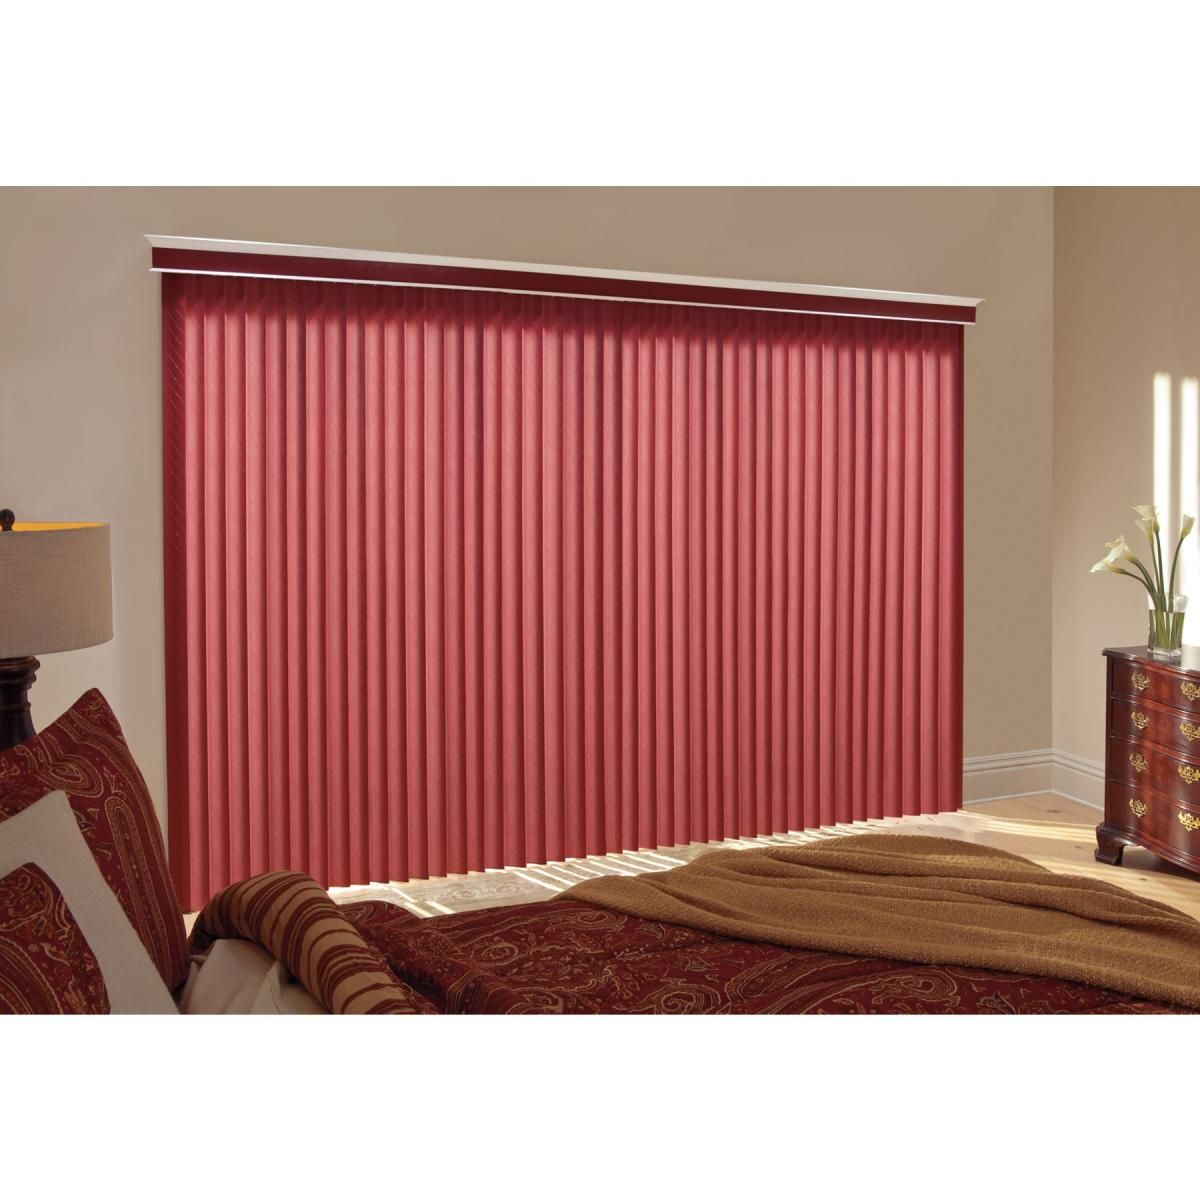 cellular striking kirsch shutters horizontal pictures curtain track concept lockseam rod interior blinds window shades